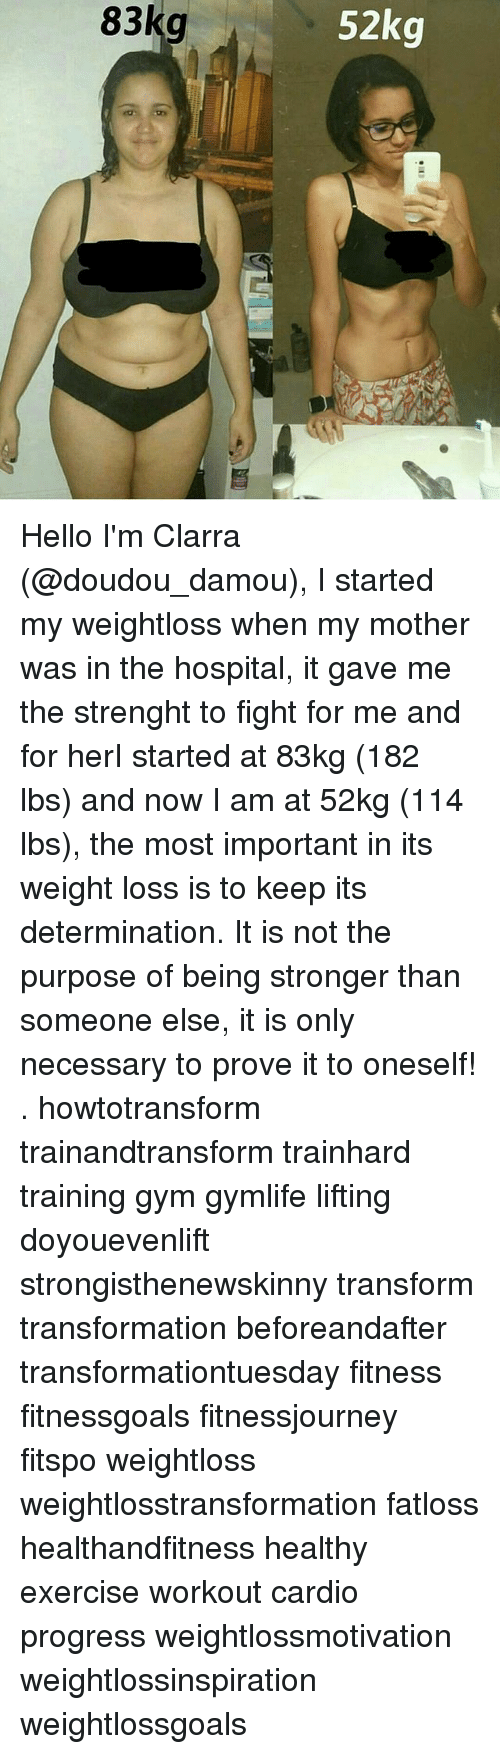 Doyouevenlift: 52kg  83kg Hello I'm Clarra (@doudou_damou), I started my weightloss when my mother was in the hospital, it gave me the strenght to fight for me and for herI started at 83kg (182 lbs) and now I am at 52kg (114 lbs), the most important in its weight loss is to keep its determination. It is not the purpose of being stronger than someone else, it is only necessary to prove it to oneself! . howtotransform trainandtransform trainhard training gym gymlife lifting doyouevenlift strongisthenewskinny transform transformation beforeandafter transformationtuesday fitness fitnessgoals fitnessjourney fitspo weightloss weightlosstransformation fatloss healthandfitness healthy exercise workout cardio progress weightlossmotivation weightlossinspiration weightlossgoals